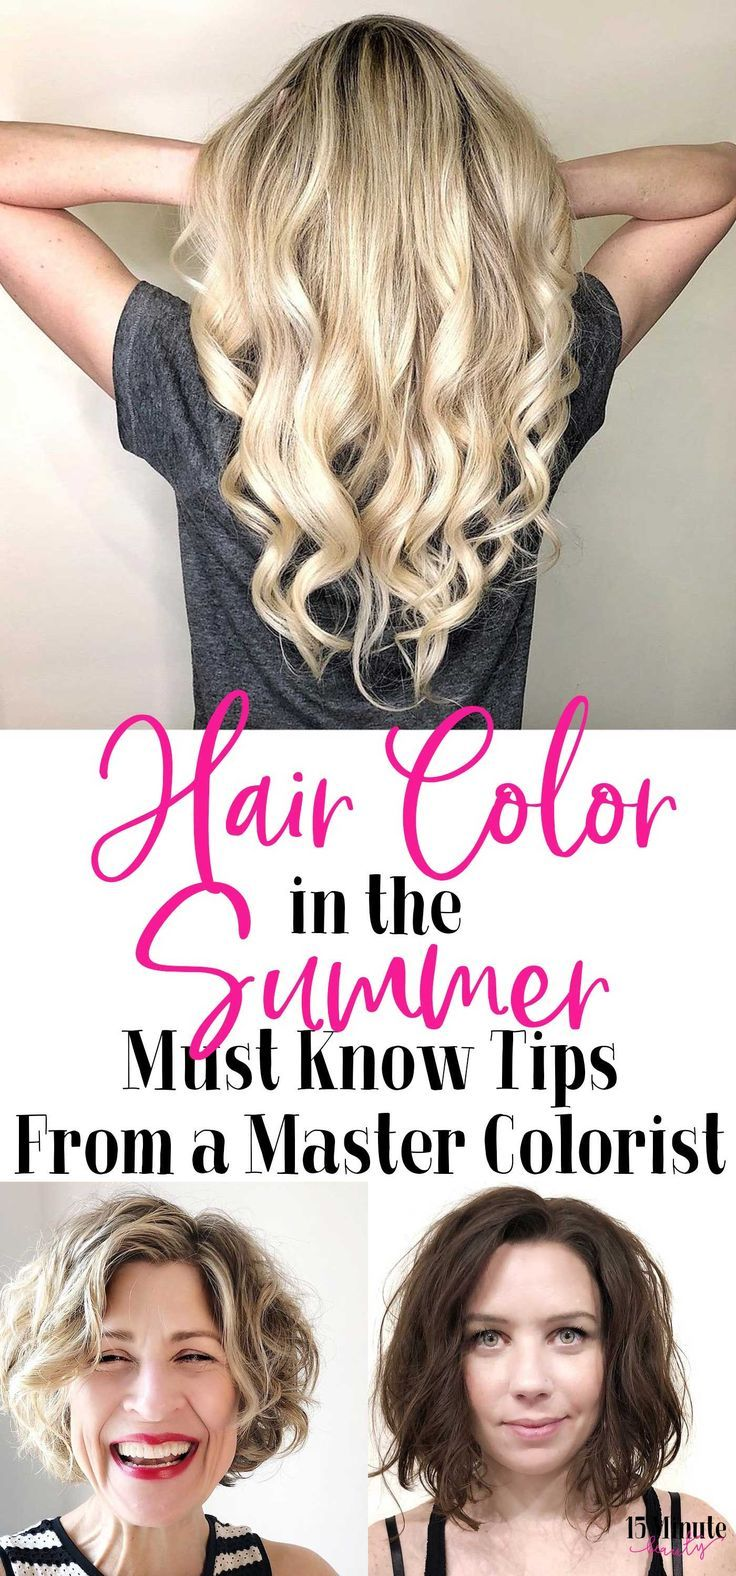 It can be really hard to keep your hair color looking amazing in the summer, the sun, pool water or saltwater can really fade and alter your color. These tips from a master hair colorist will keep your hair color looking amazing!